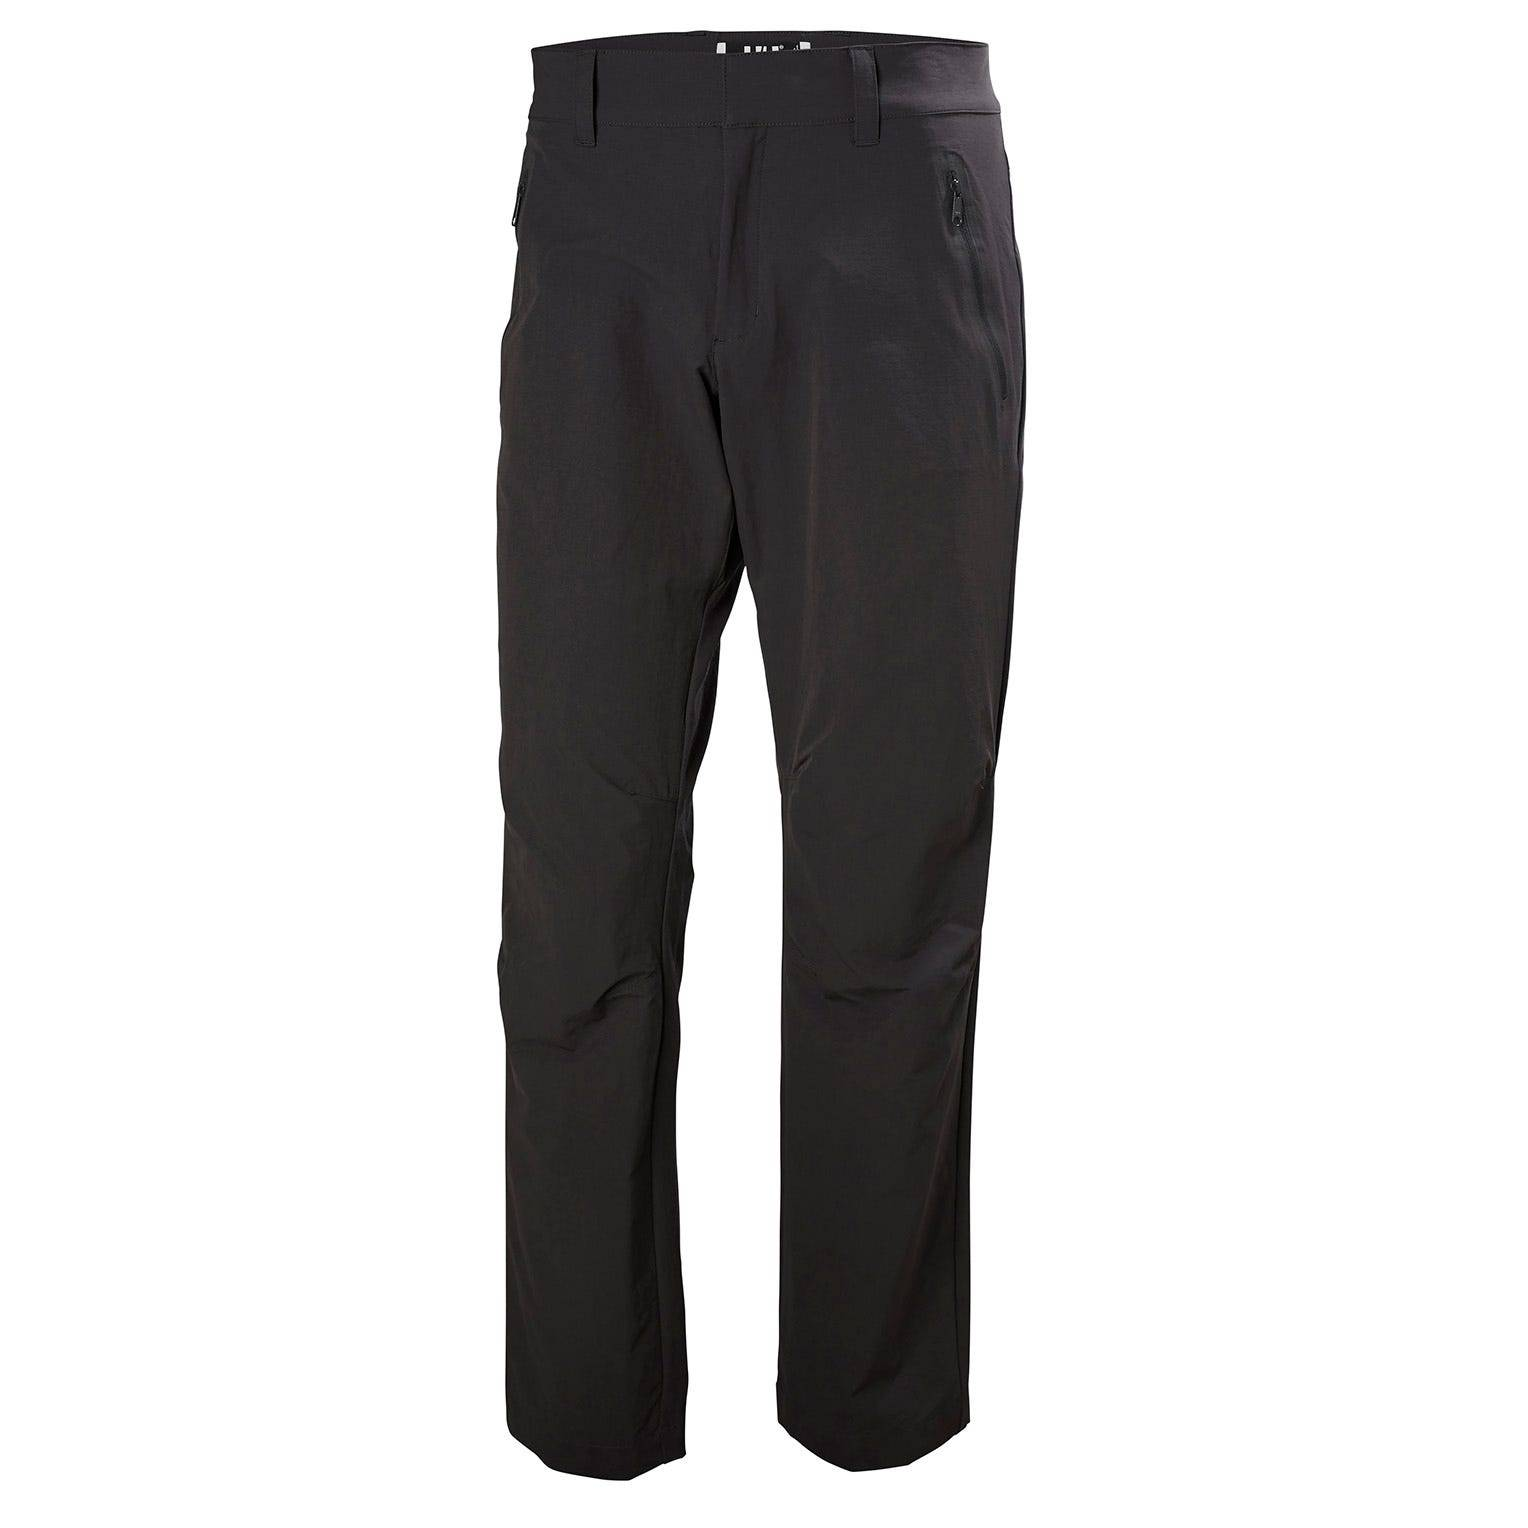 Helly Hansen Crewline Qd Pant Mens Sailing Black 33